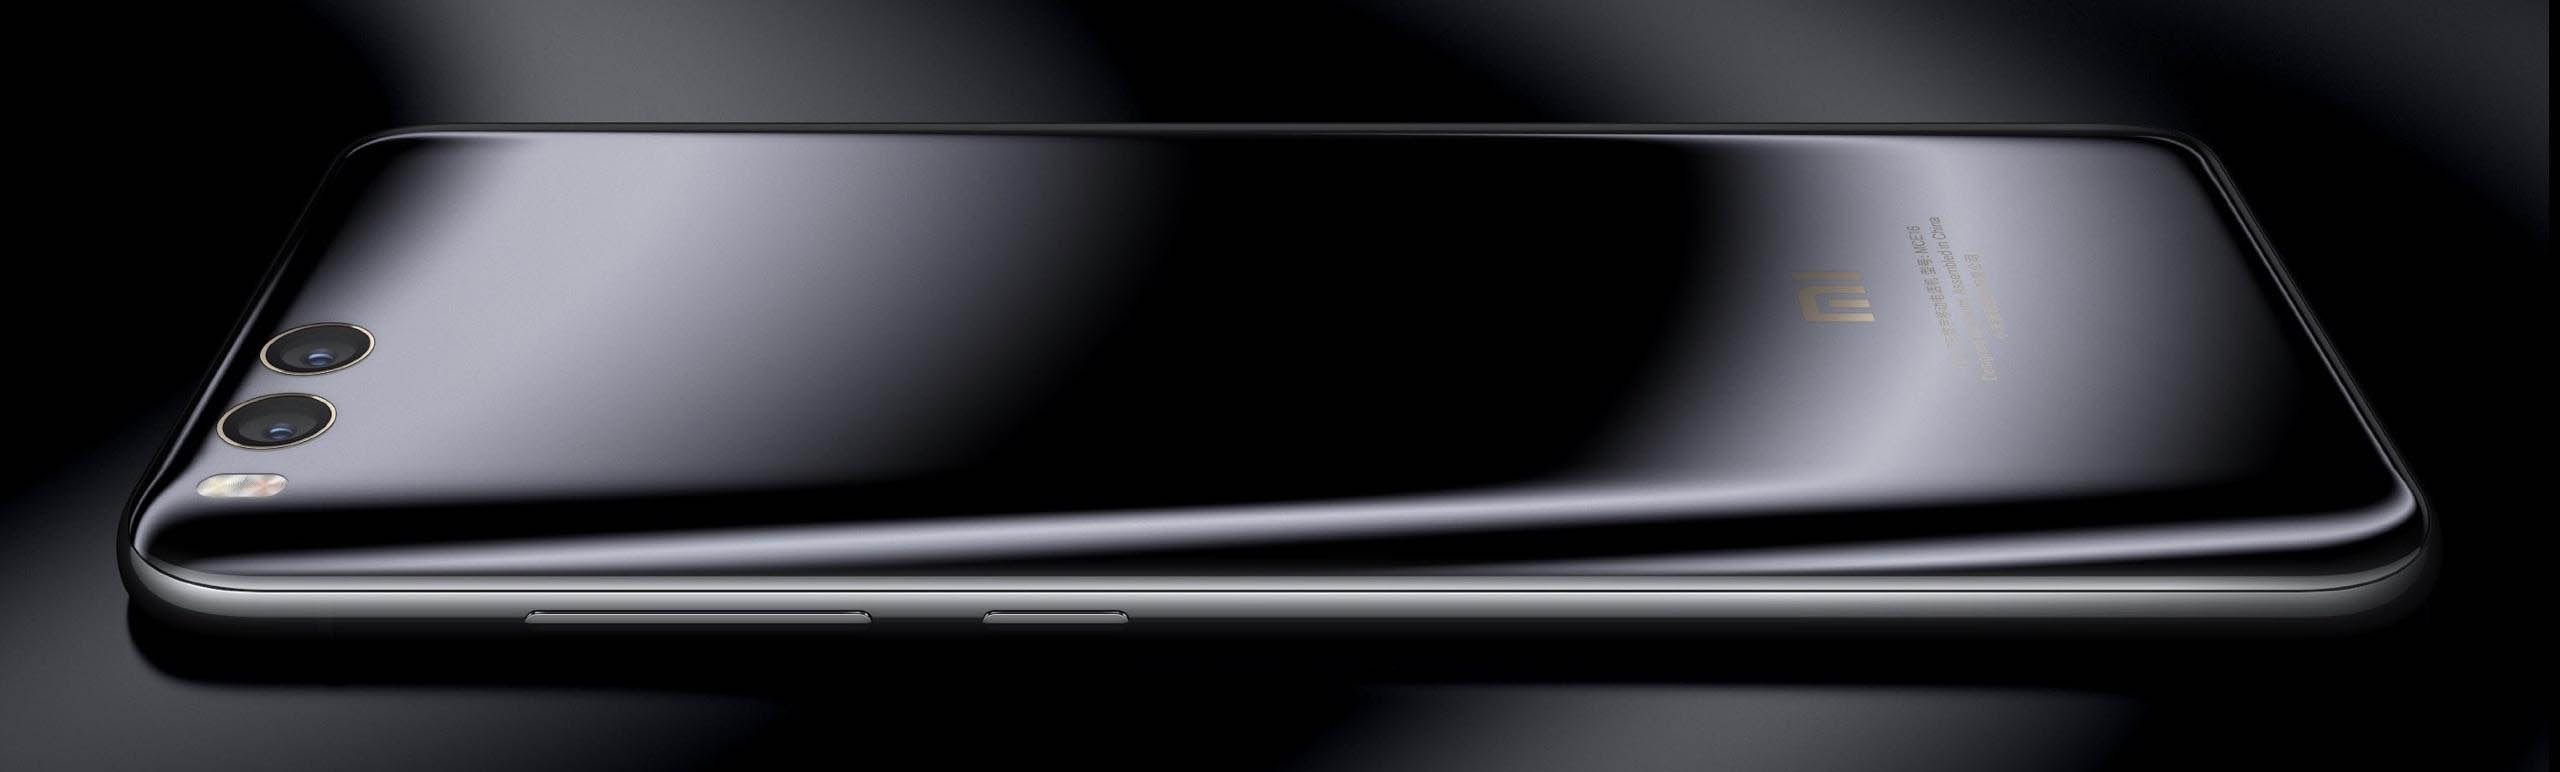 Xiaomi Mi 6 with Snapdragon 835, 6 GB RAM and Dual rear camera setup launched